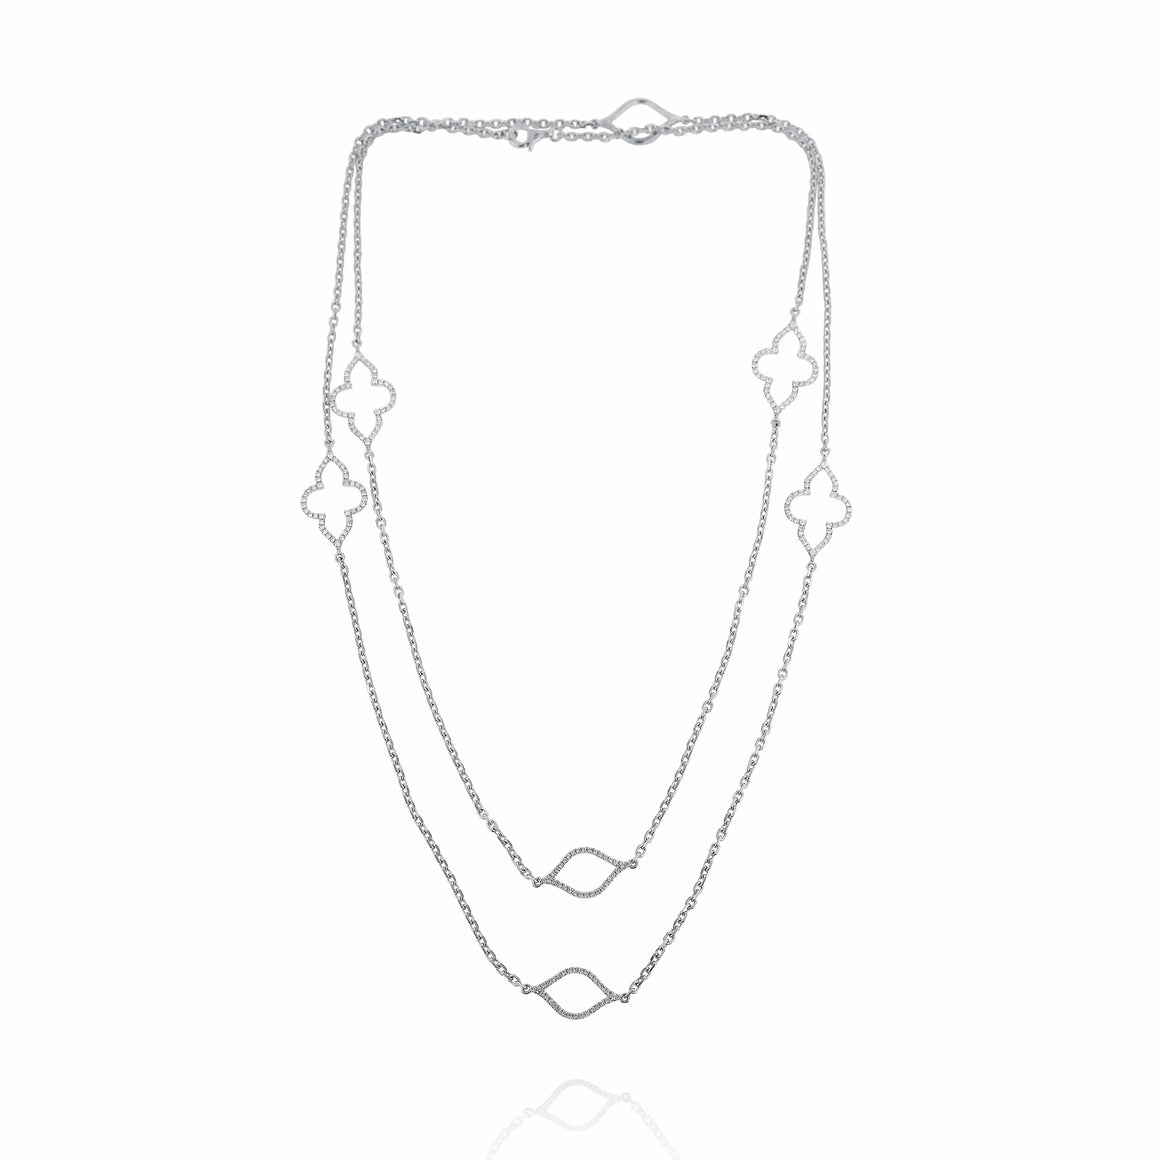 Yael 14k White Gold Layered Diamond Necklace